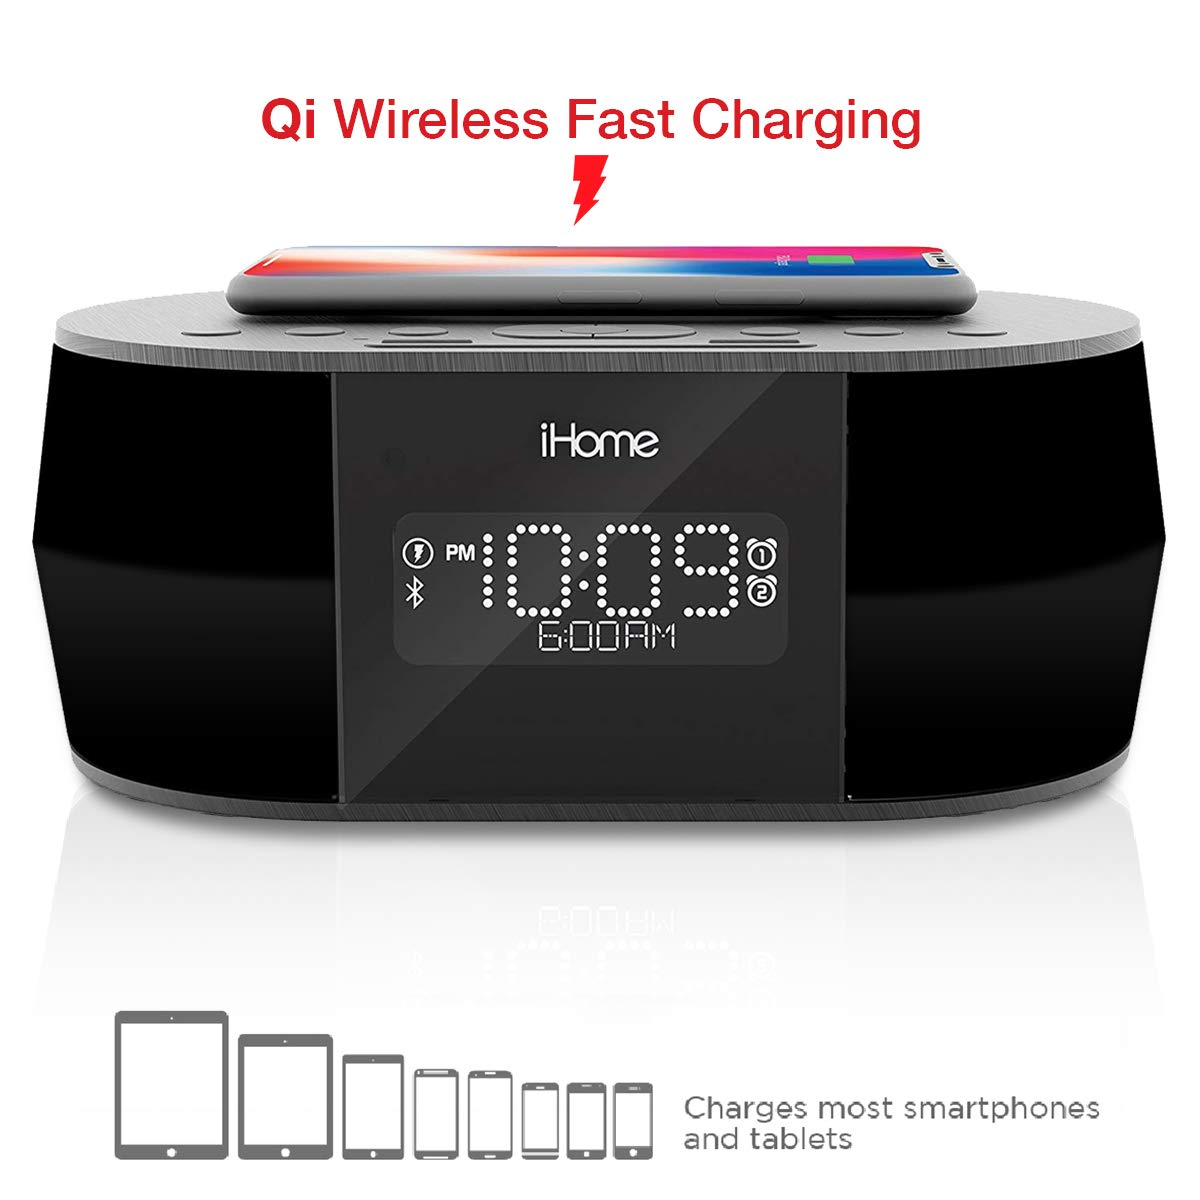 iHome iBTW38 Alarm Clock Bluetooth Stereo with Lightning iPhone Qi Wireless Charging Dock Station for iPhone Xs, XS Max, XR, X, iPhone 8/7/6 Plus USB Port to Charge Any USB Device by iHome